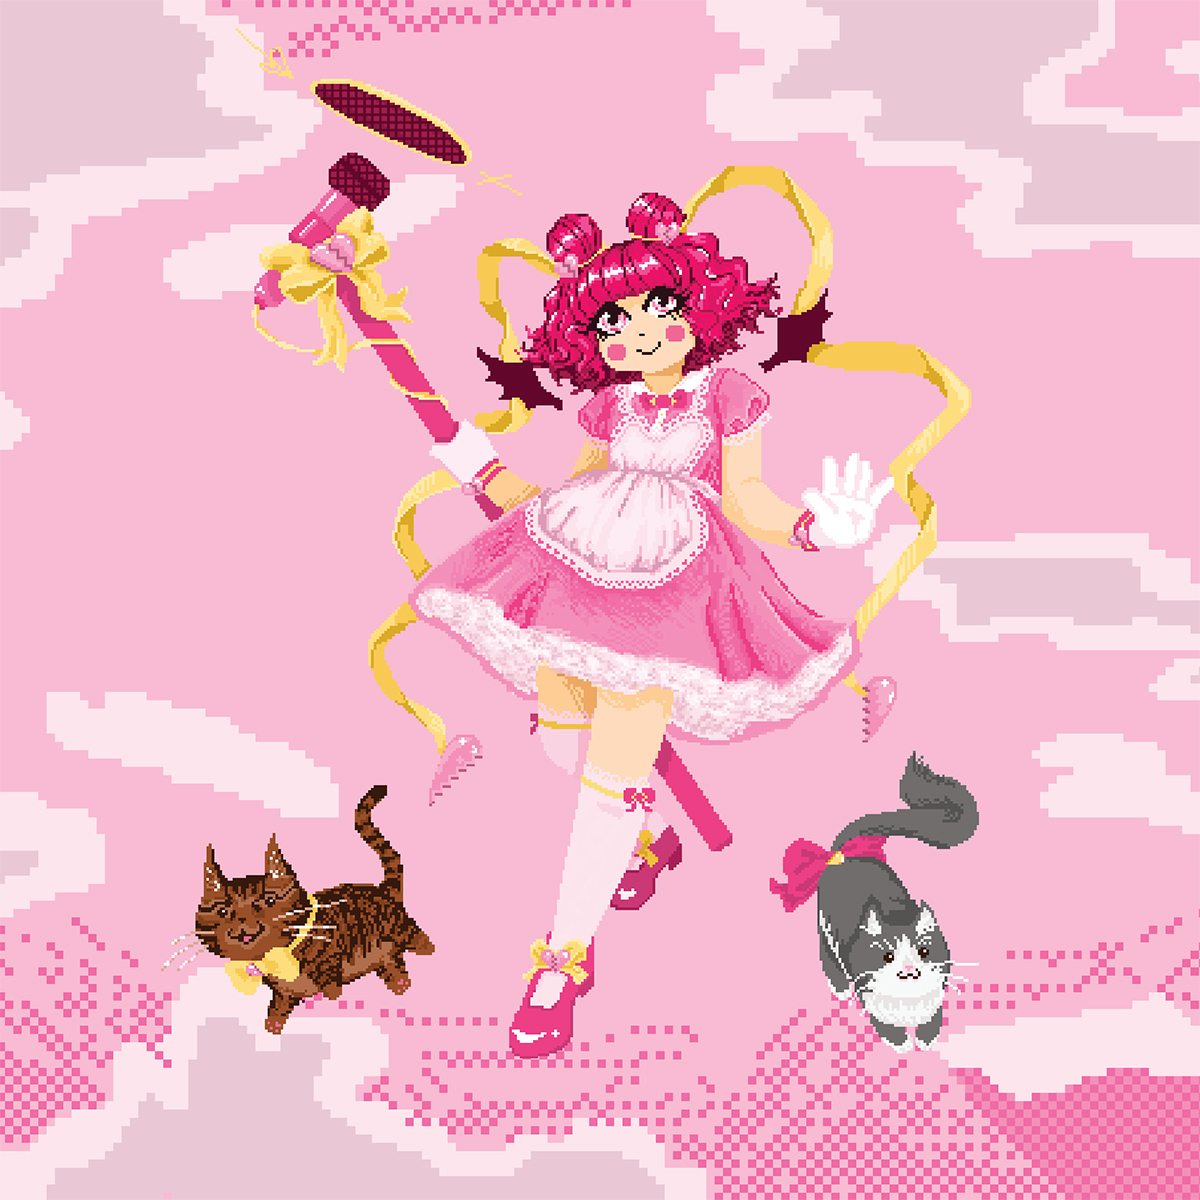 illustration of magical girl with a pink broken hearts theme. She has red curly hair, a pink doll dress, yellow ribbon accents with broken heart charms, and is holding a huge microphone. Two chibi cats are by her feet, a brown one to the left, and a grey and white one to the right. The background is a sky with clouds.